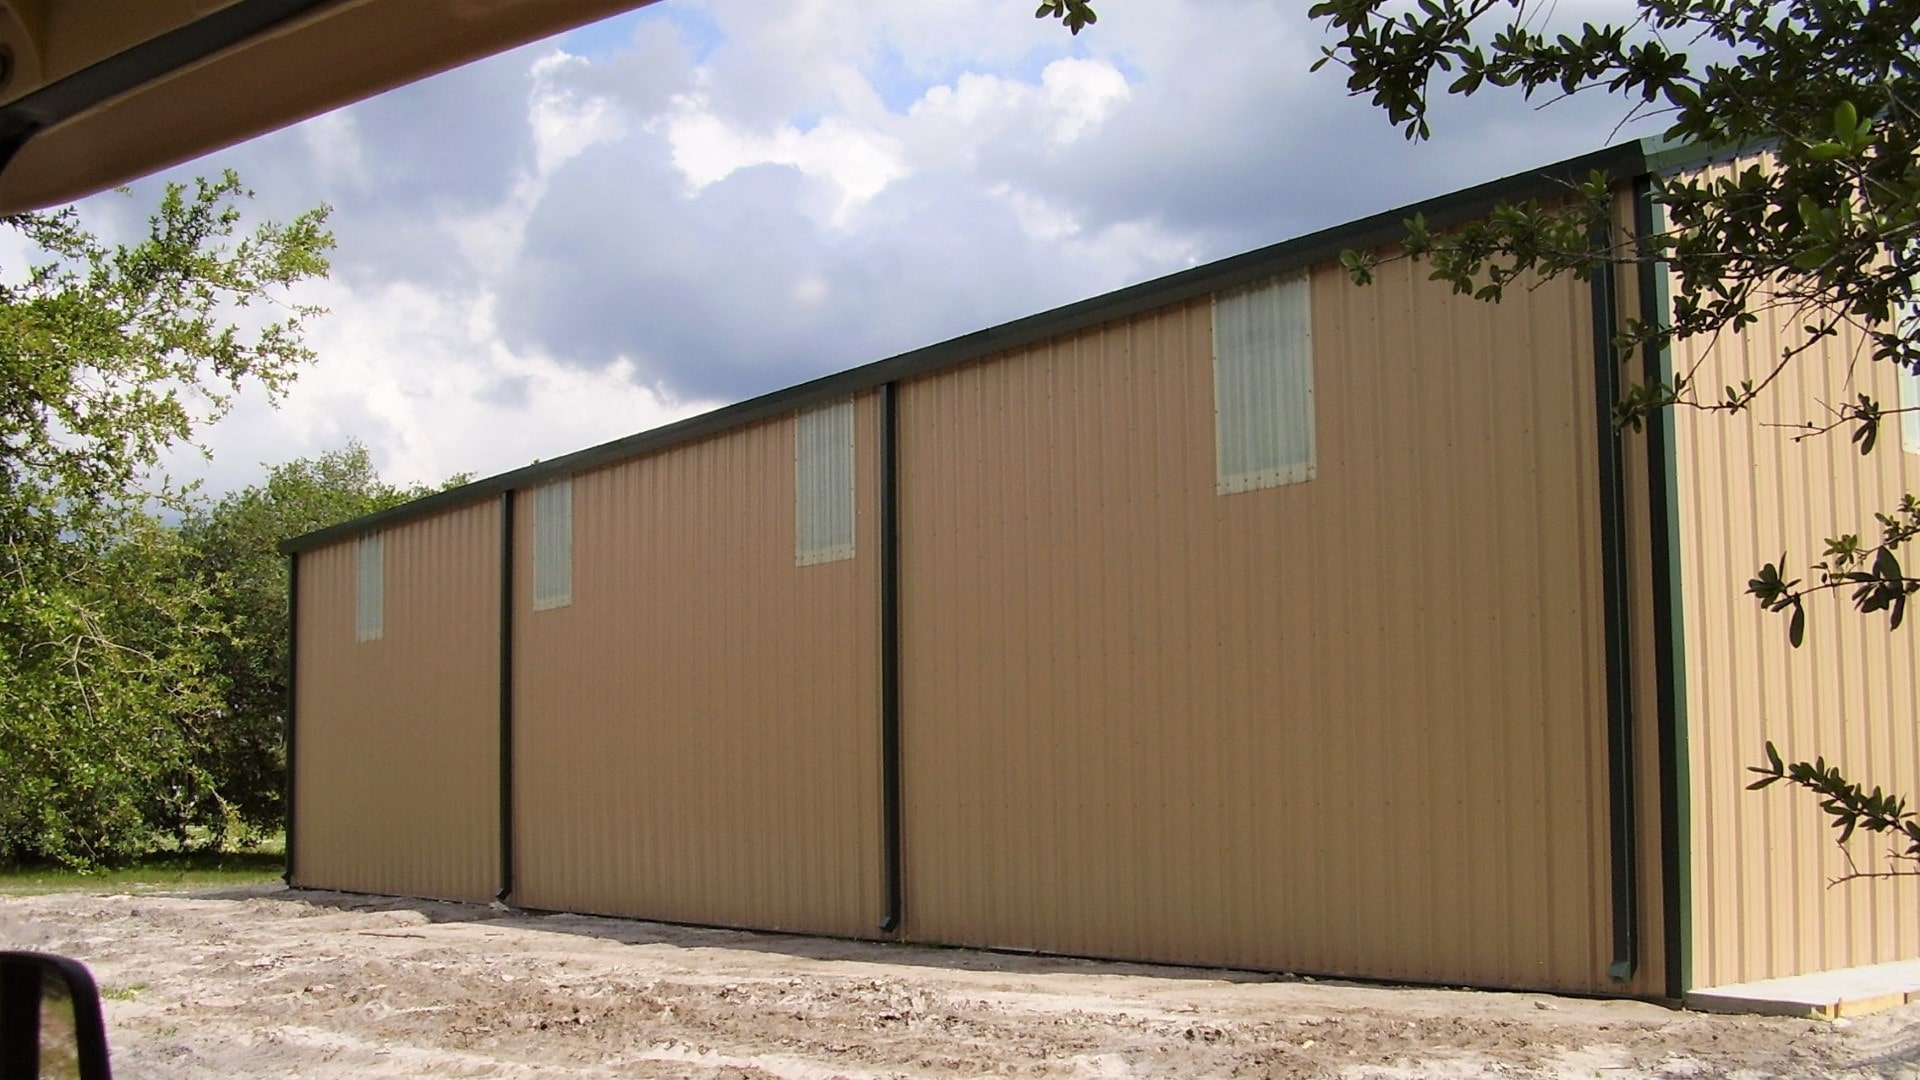 Tan steel building with dark roof and trim, 3 large rollup doors and wall LTPs. View of back sidewall.